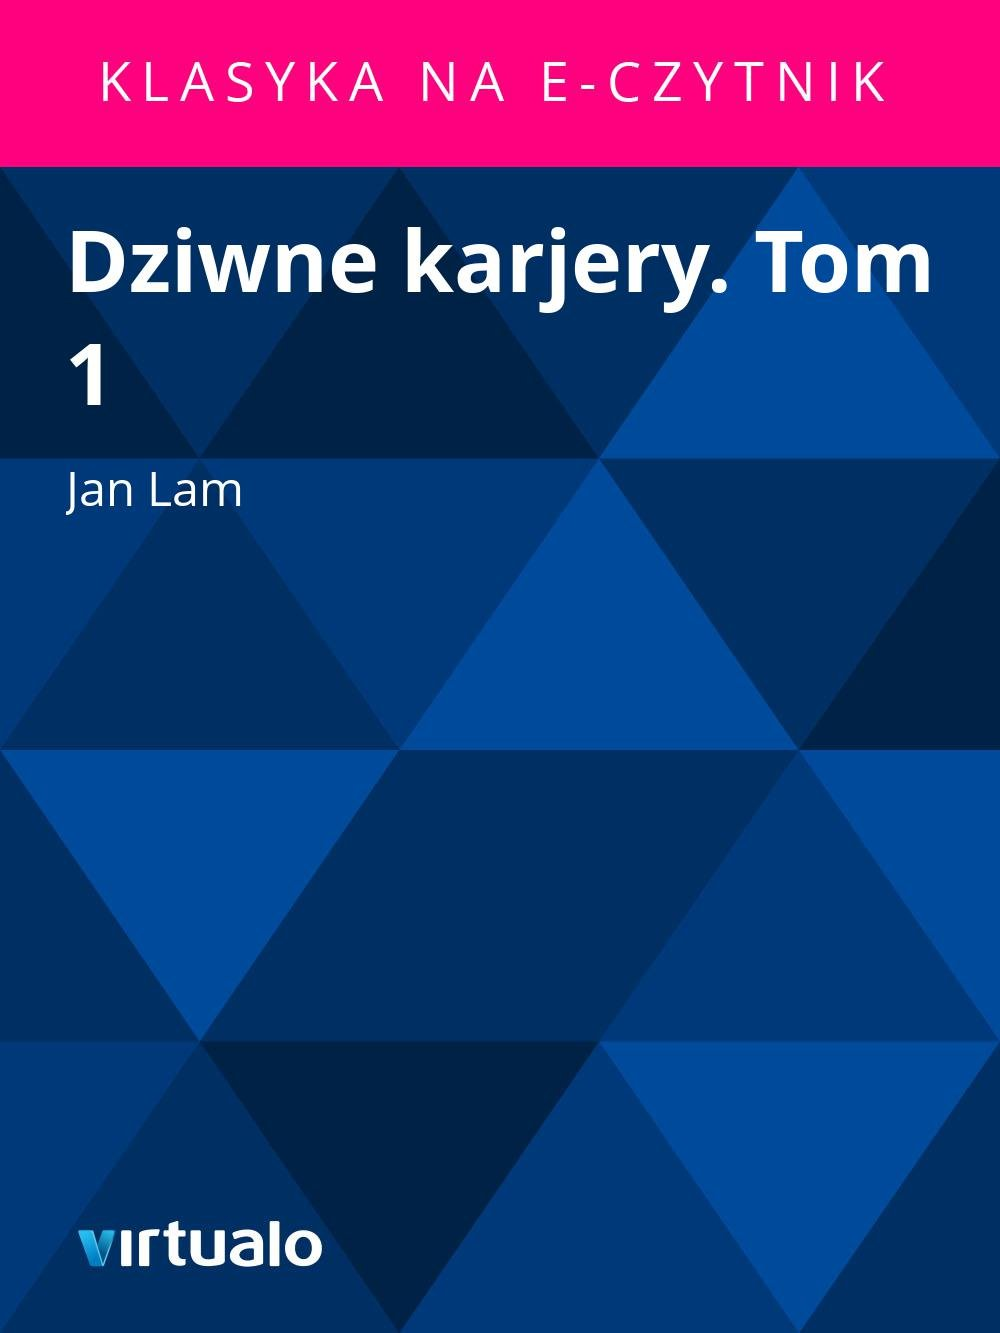 Dziwne karjery. Tom 1 - Ebook (Książka EPUB) do pobrania w formacie EPUB